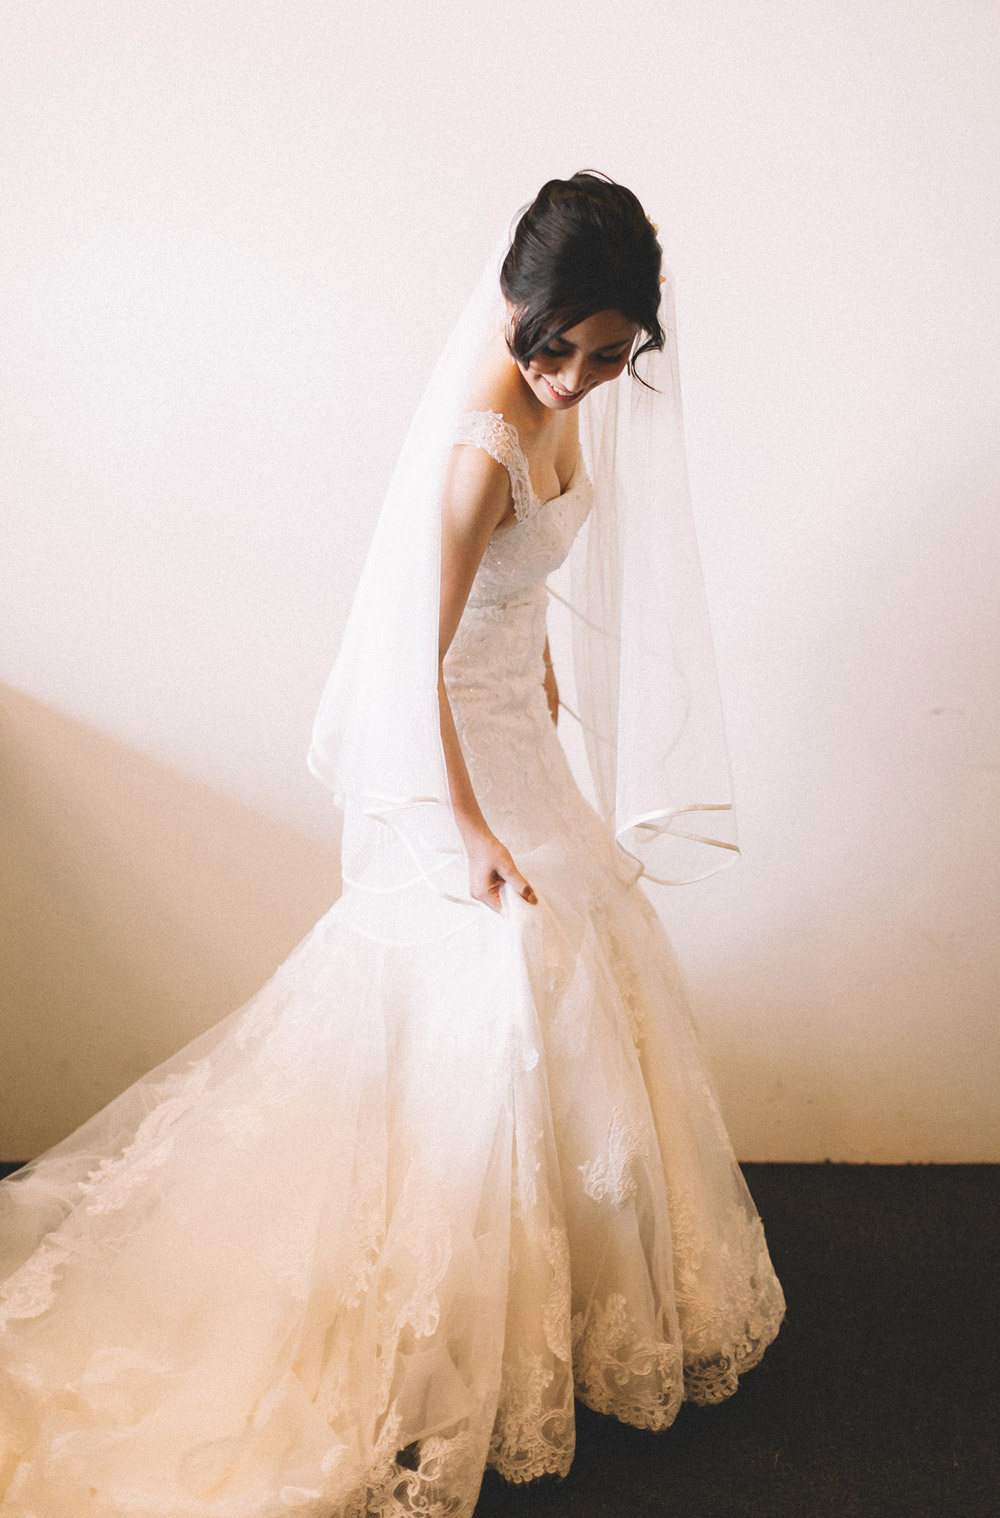 Dress by Celest Thoi. Photo by Arch and Arrow Studio. www.theweddingnotebook.com